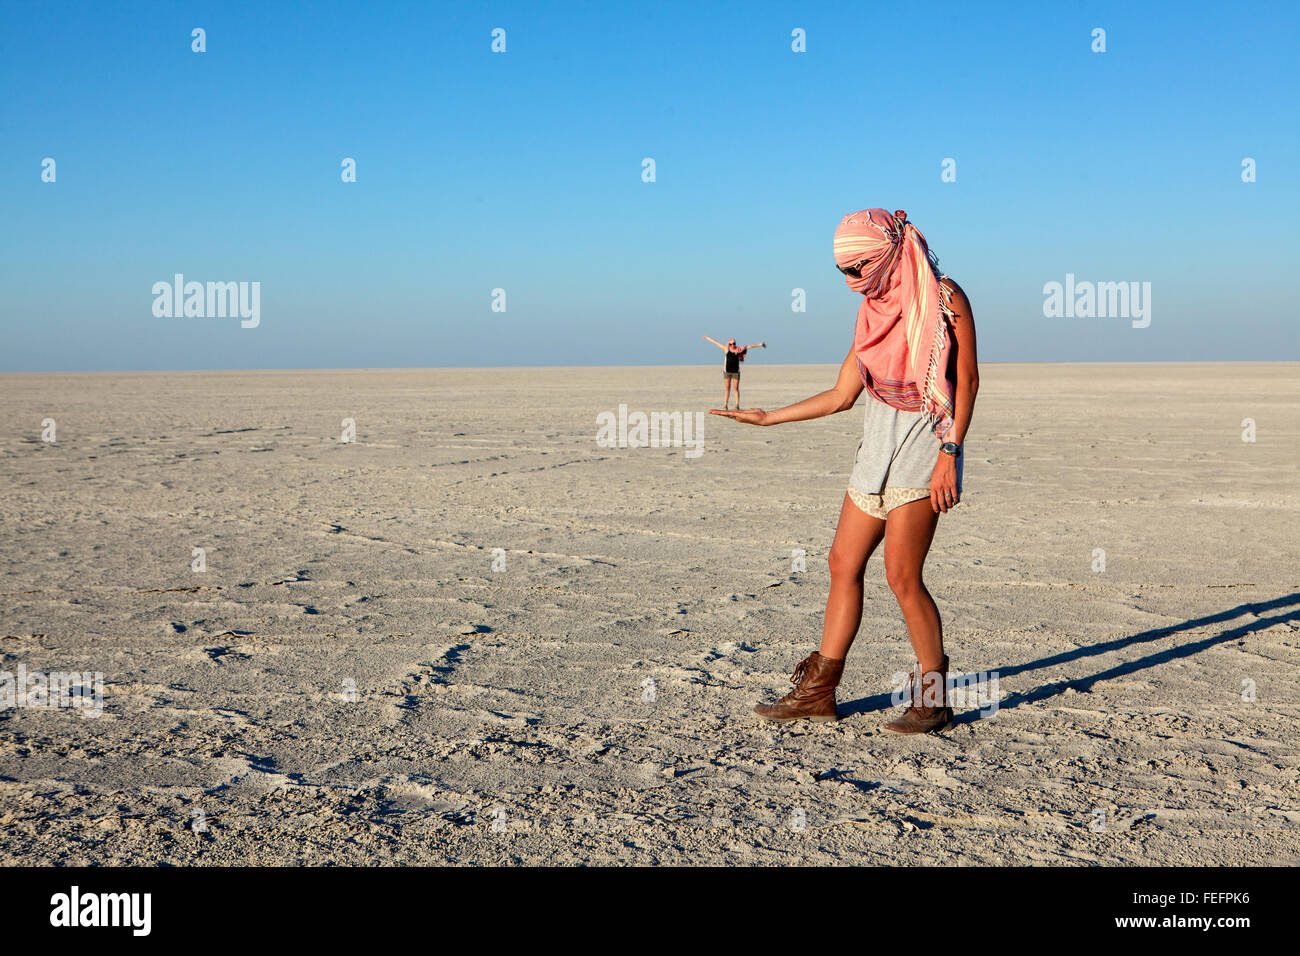 People playing with illusions - Stock Image